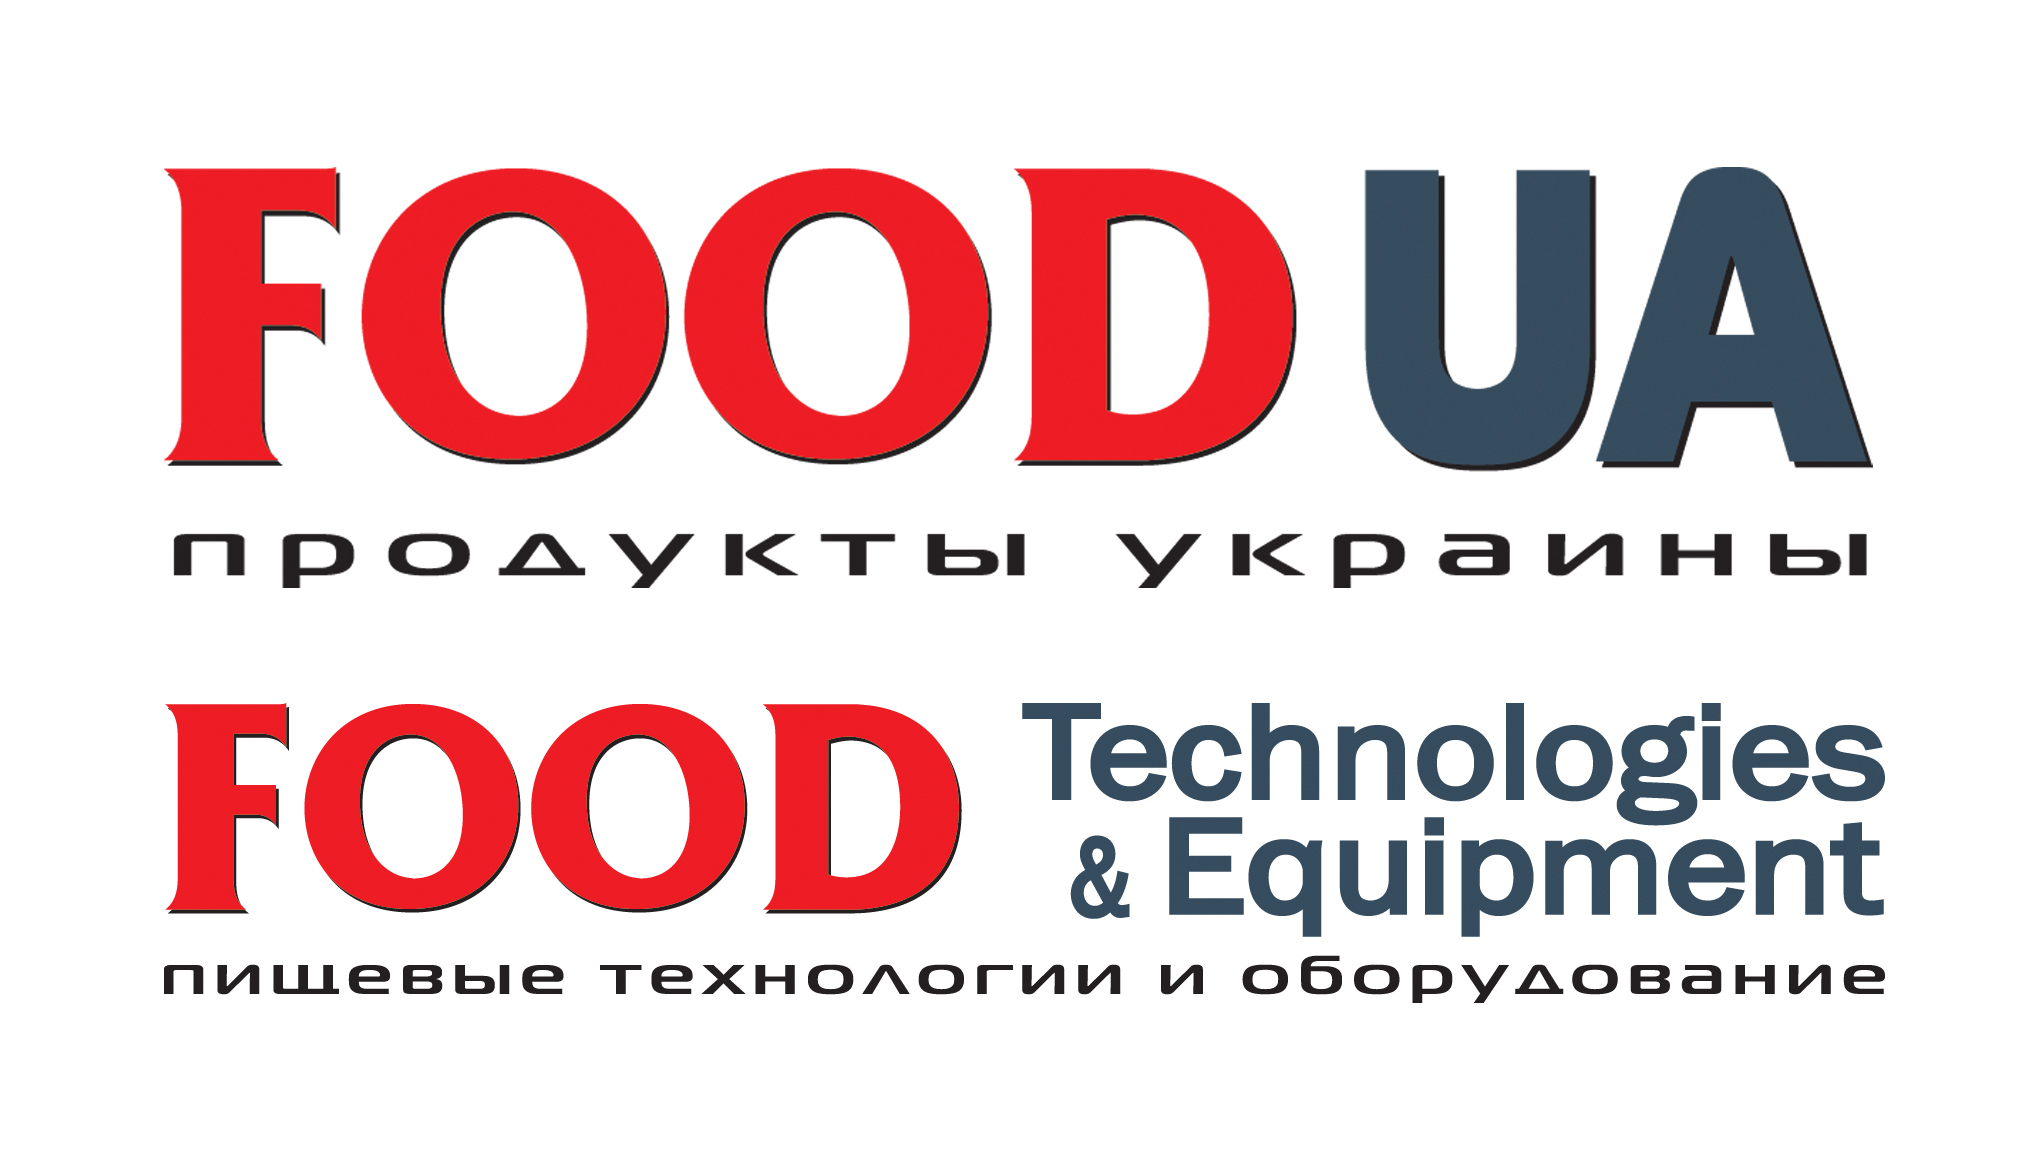 Информационный партнер PrivateLabel-2016 Food.ua, Food T&E